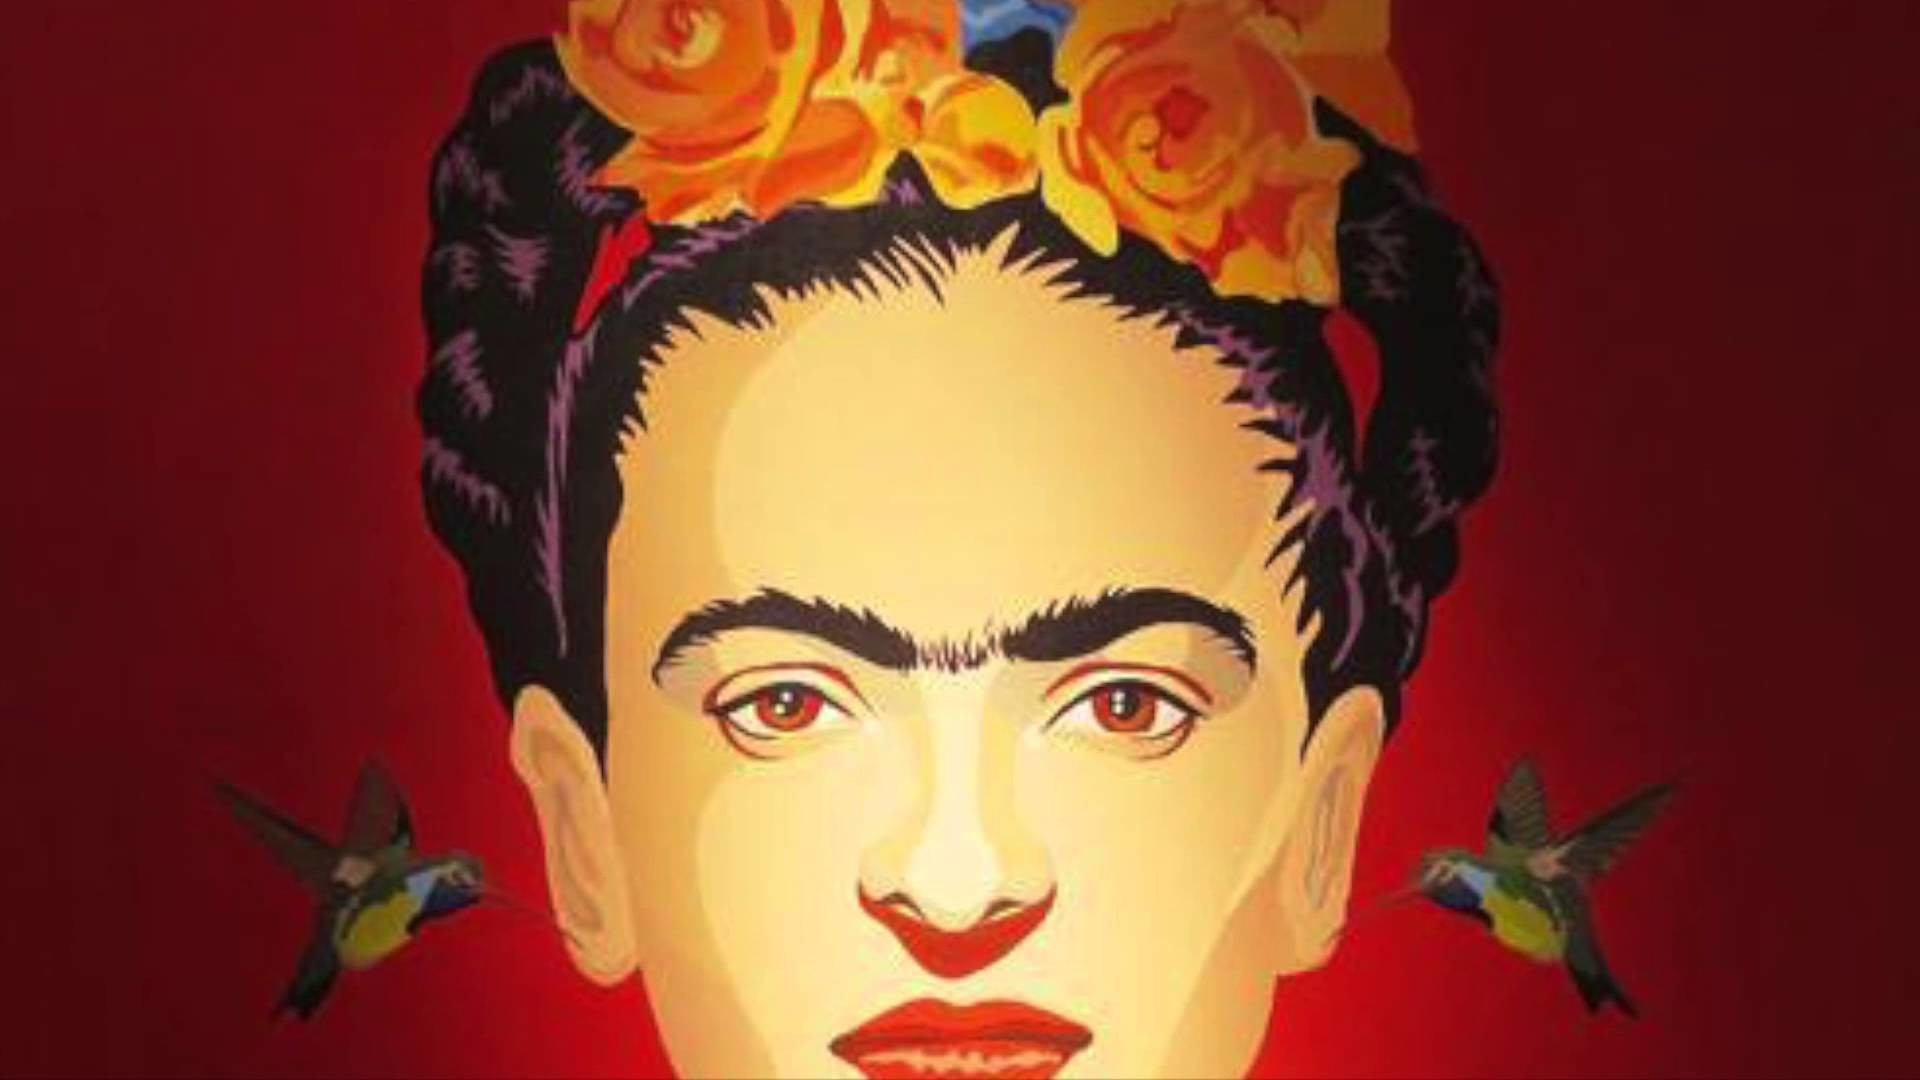 Frida Kahlo Wallpaper Iphone Diego Rivera Wallpaper 51 Images